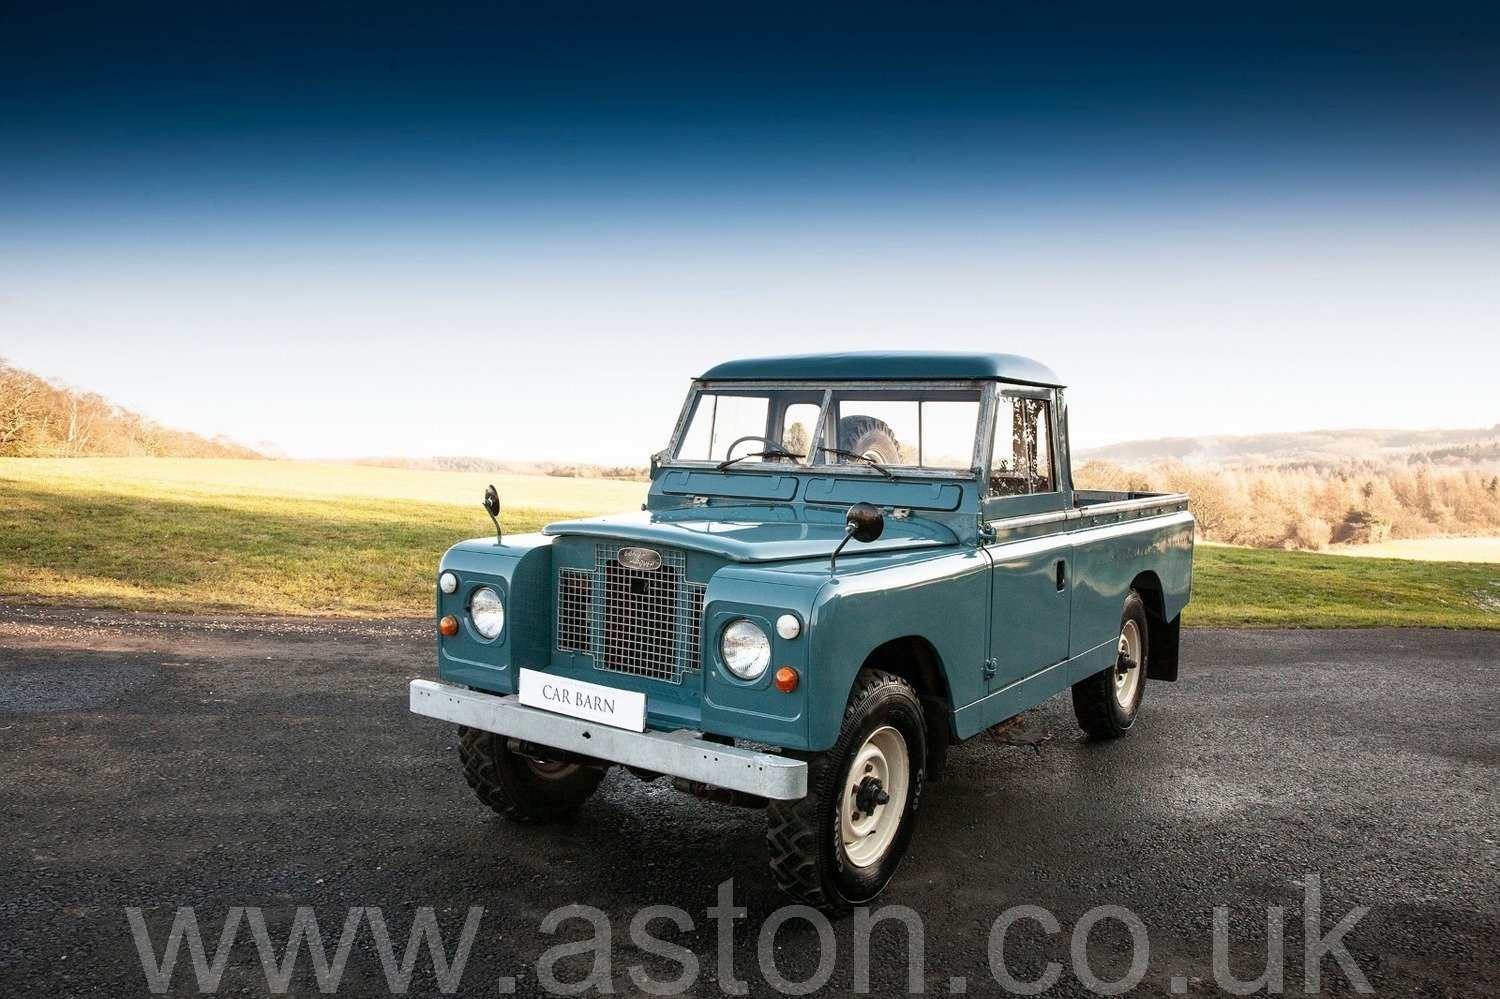 1969 Land Rover Series 2A - Ex Raf SOLD (picture 1 of 6)